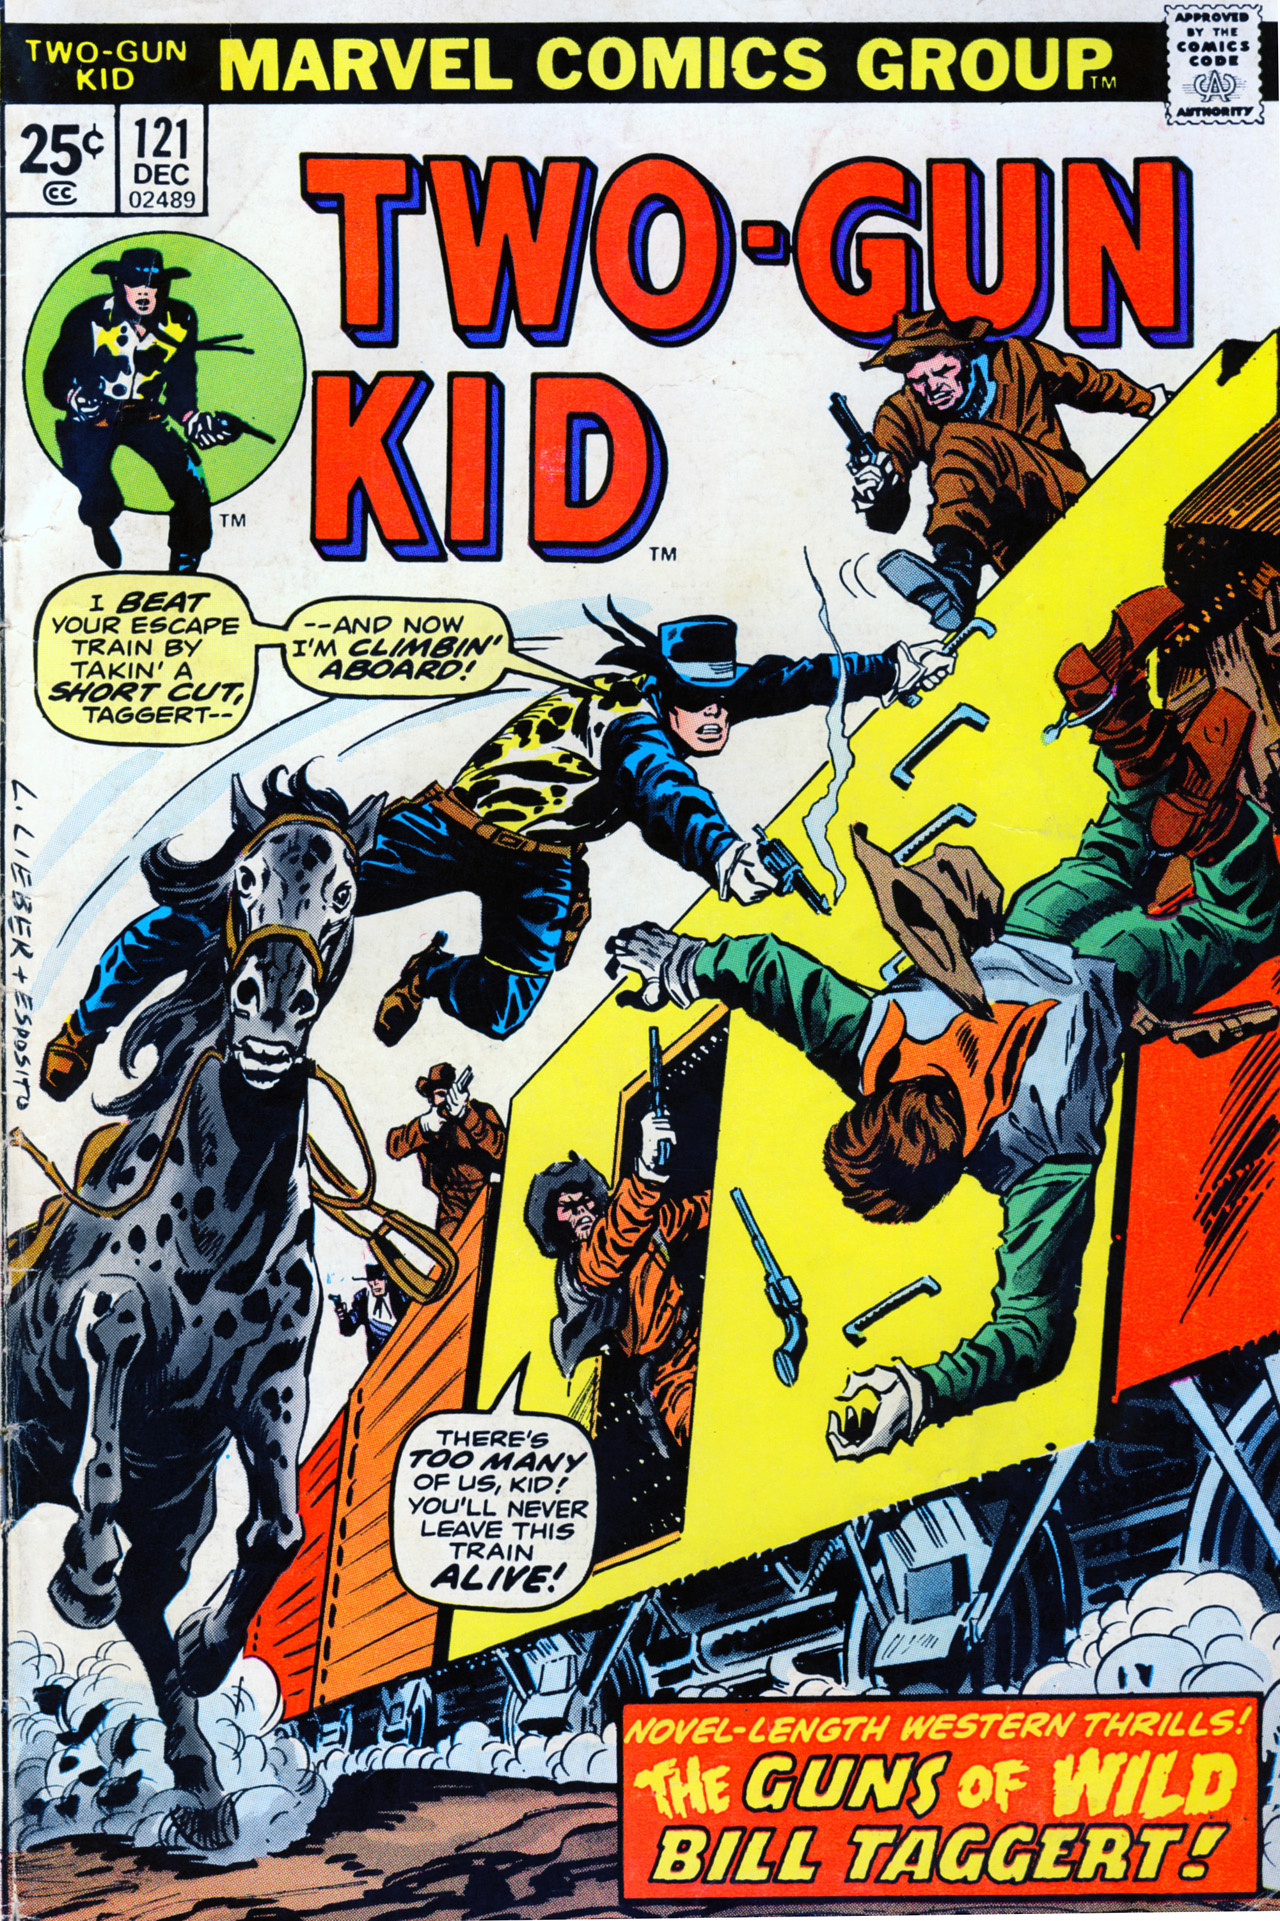 Read online Two-Gun Kid comic -  Issue #121 - 1